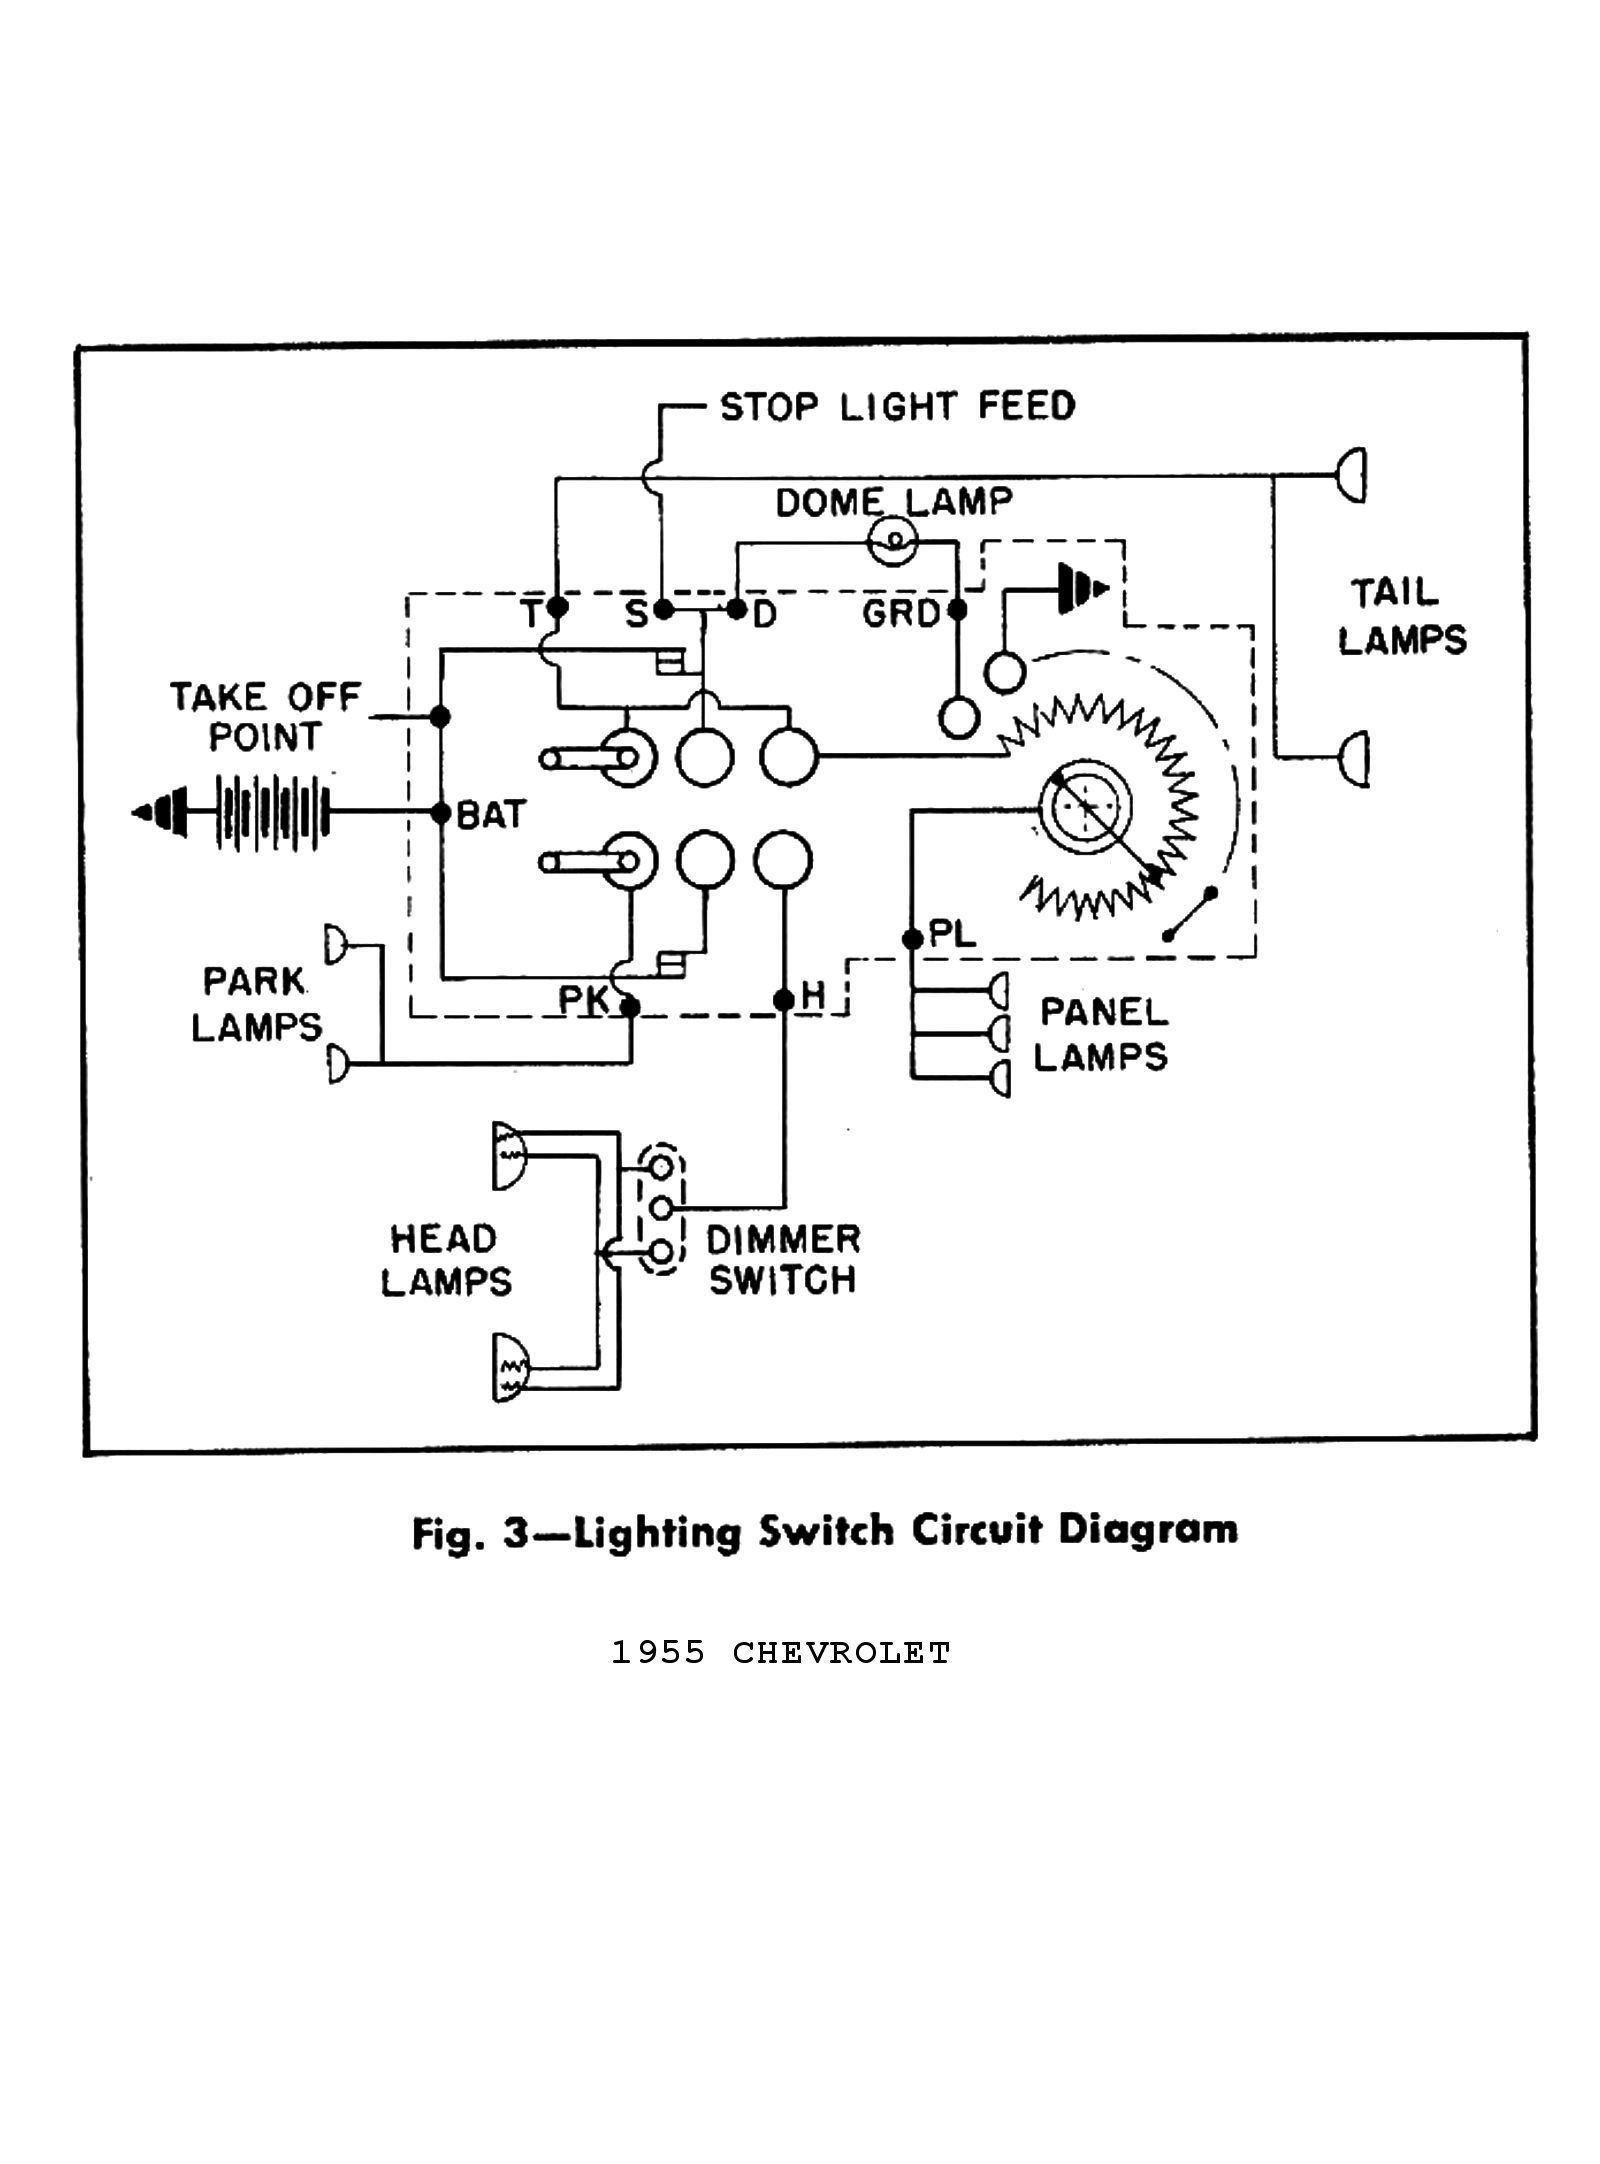 Universal Ignition Switch Wiring Diagram Inspirational 1955 Chevy Of for 1955 Chevy Ignition